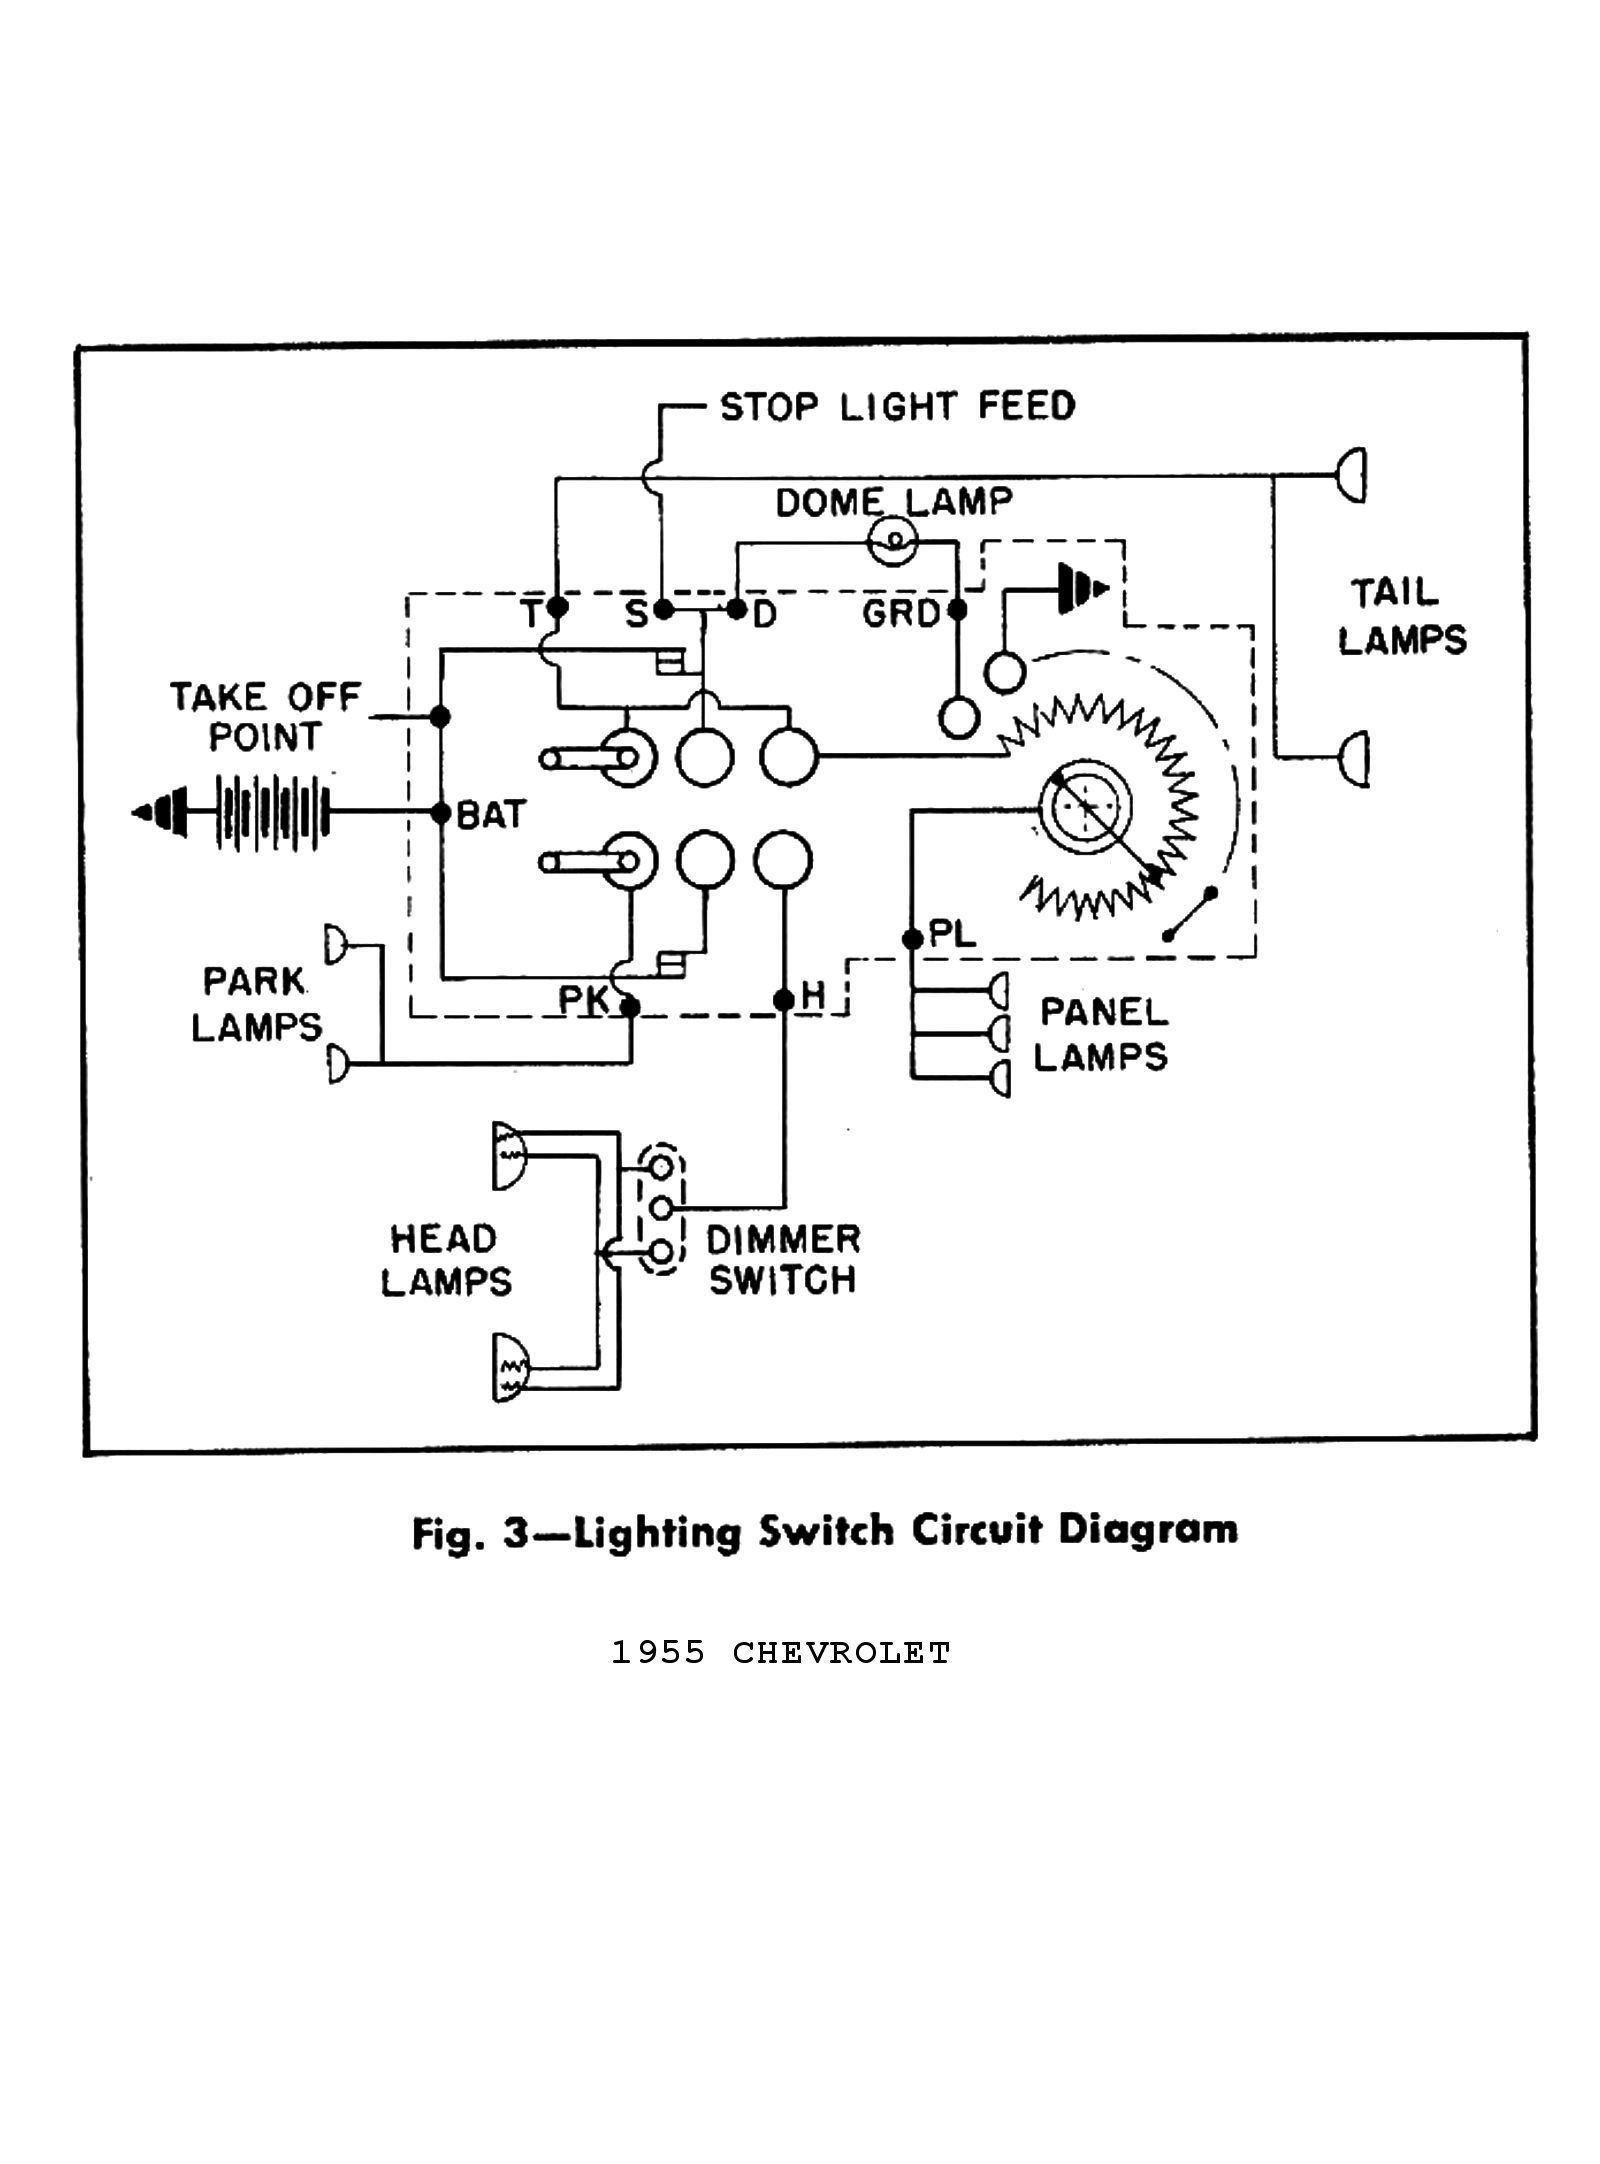 Universal Ignition Switch Wiring Diagram Inspirational 1955 Chevy Of for 1955 Chevy Ignition